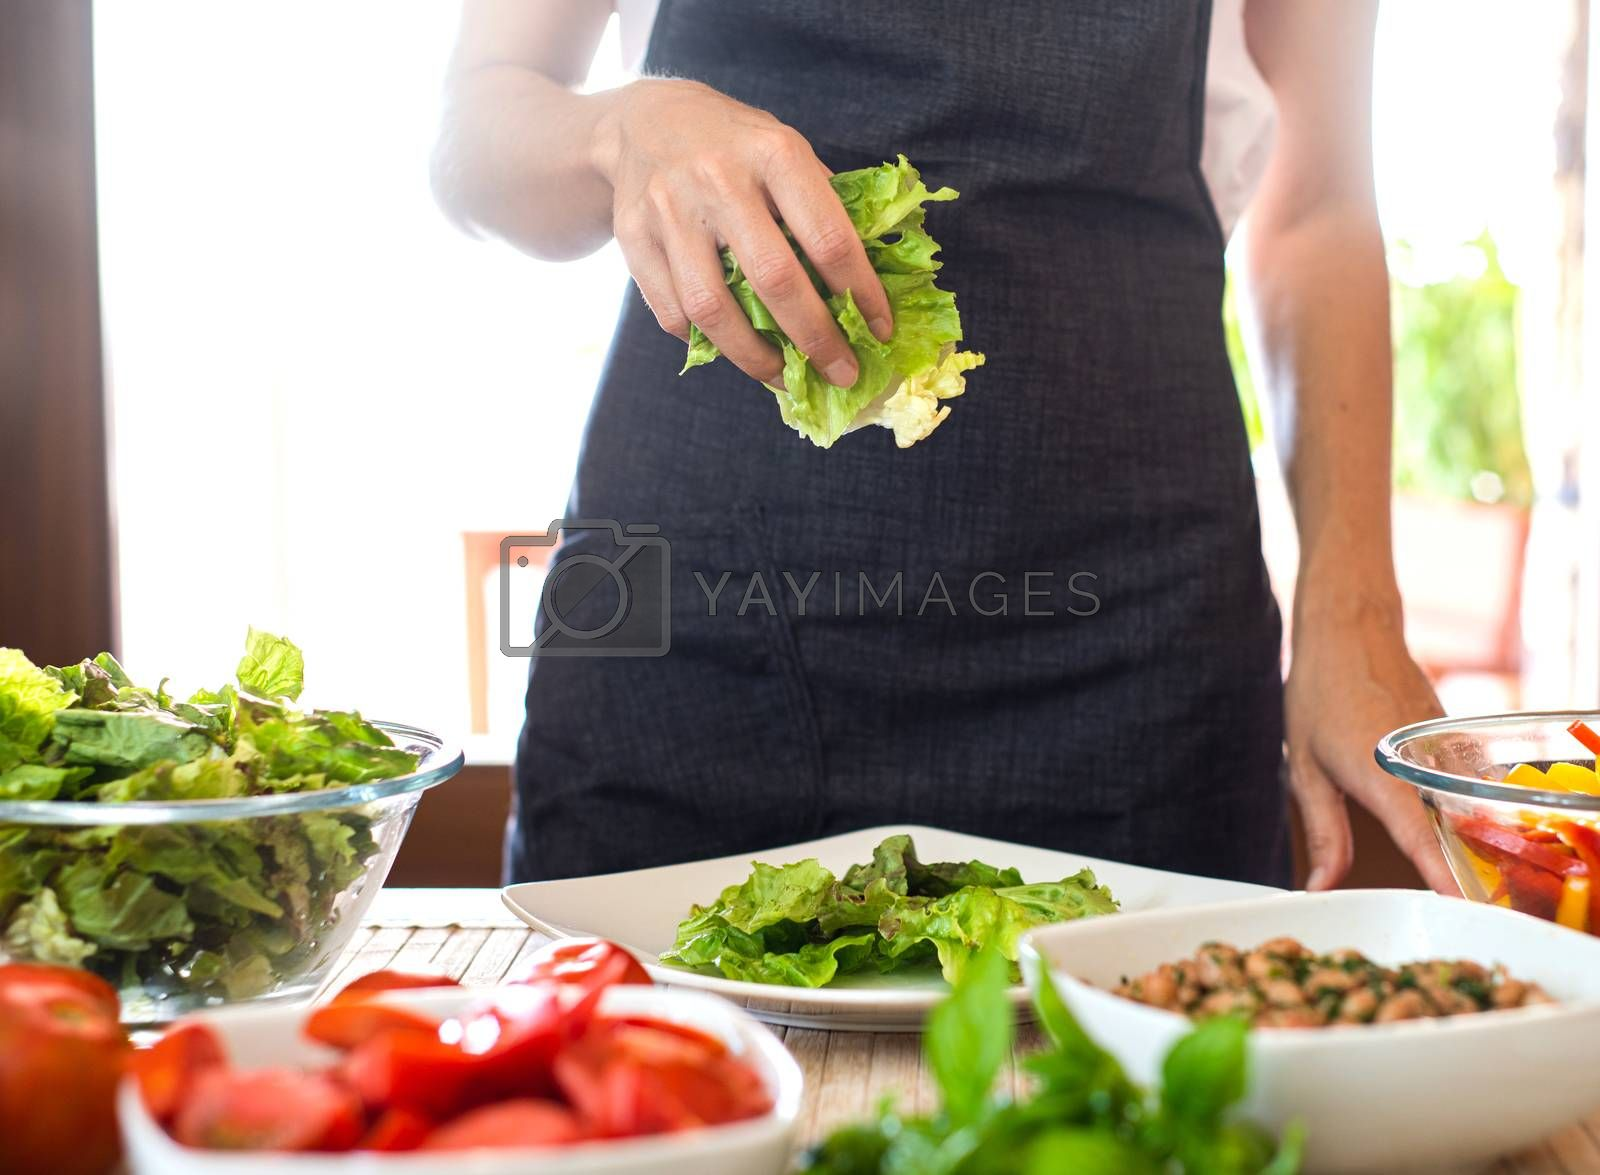 Woman chef preparing a fresh salad at home with sunlight in background with lettuce, tomatoes, beans, seeds on the table - Healthy vegan and vegetarian food concept